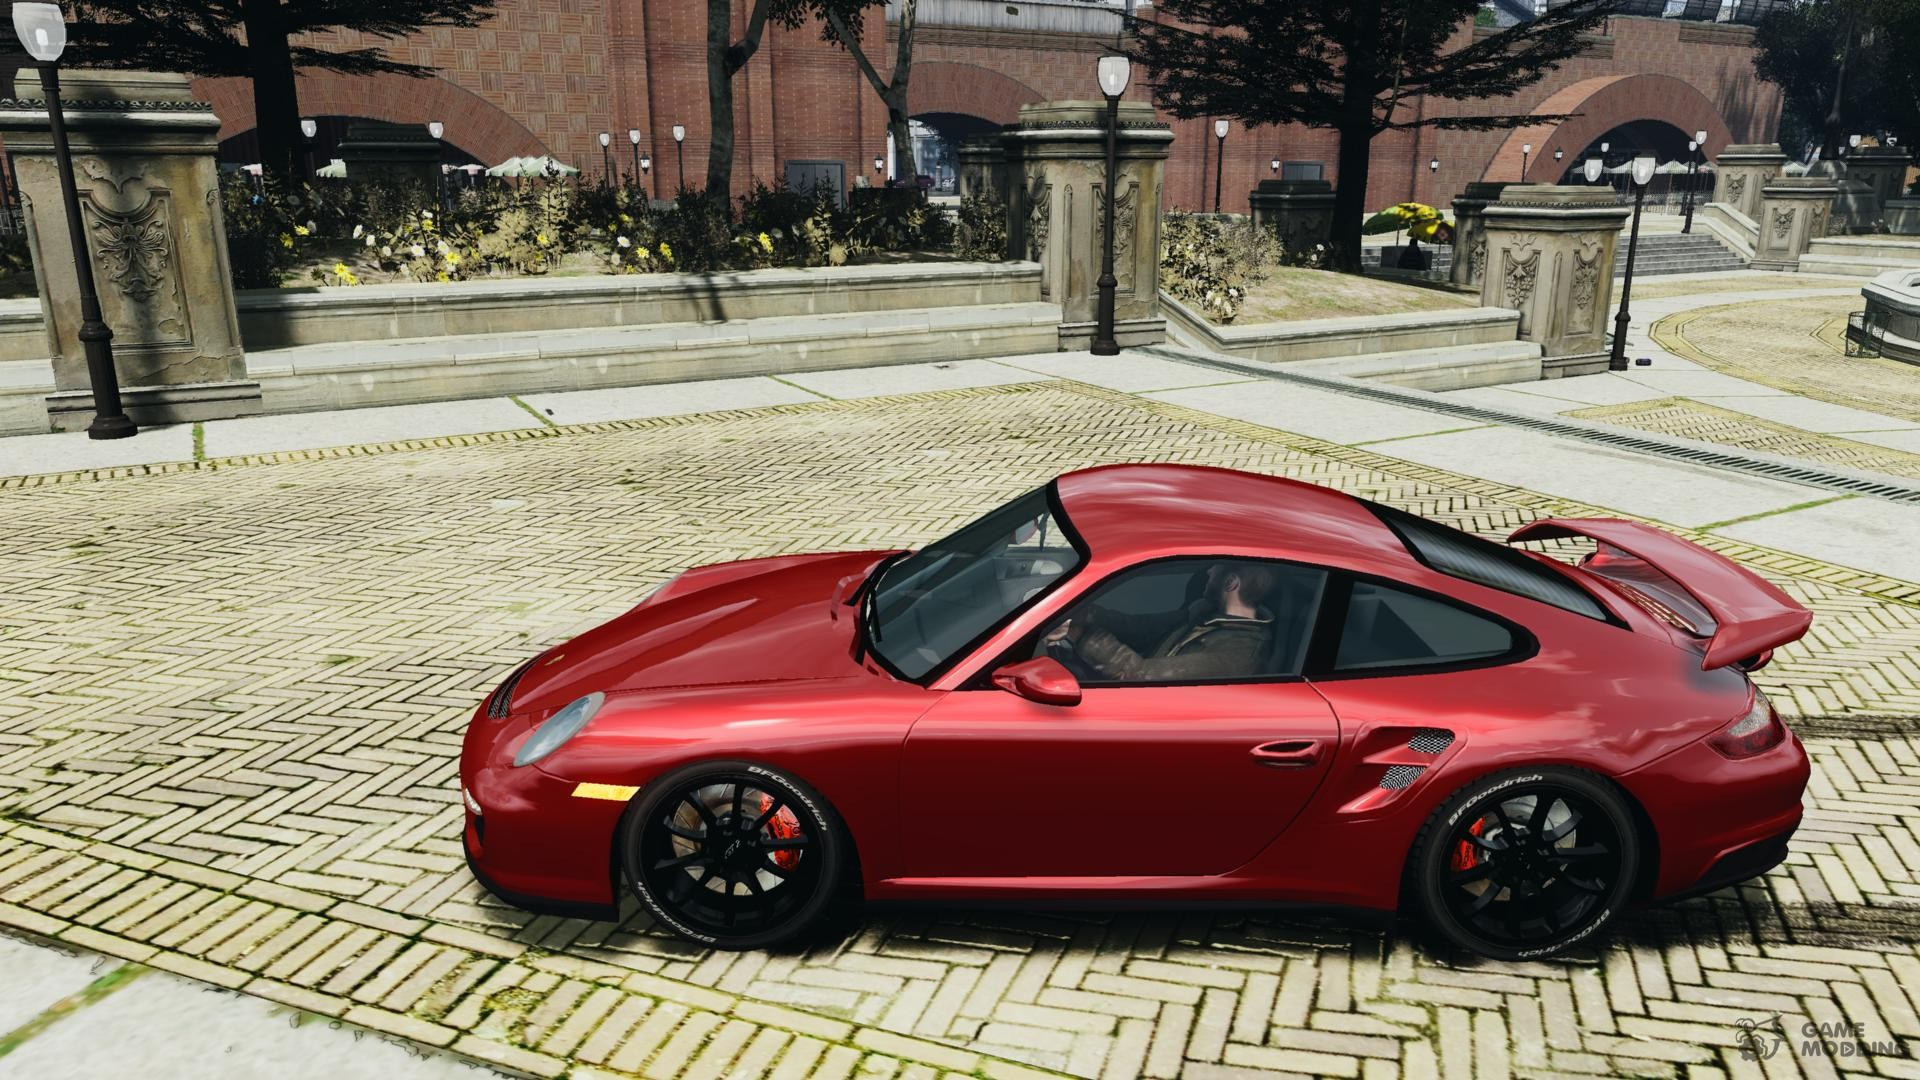 bc4c8f1f762ffe3a9026373c5b7c41457603231057120e55b5dd164beb6357e7 Remarkable Porsche 911 Gt2 Xbox 360 Cars Trend